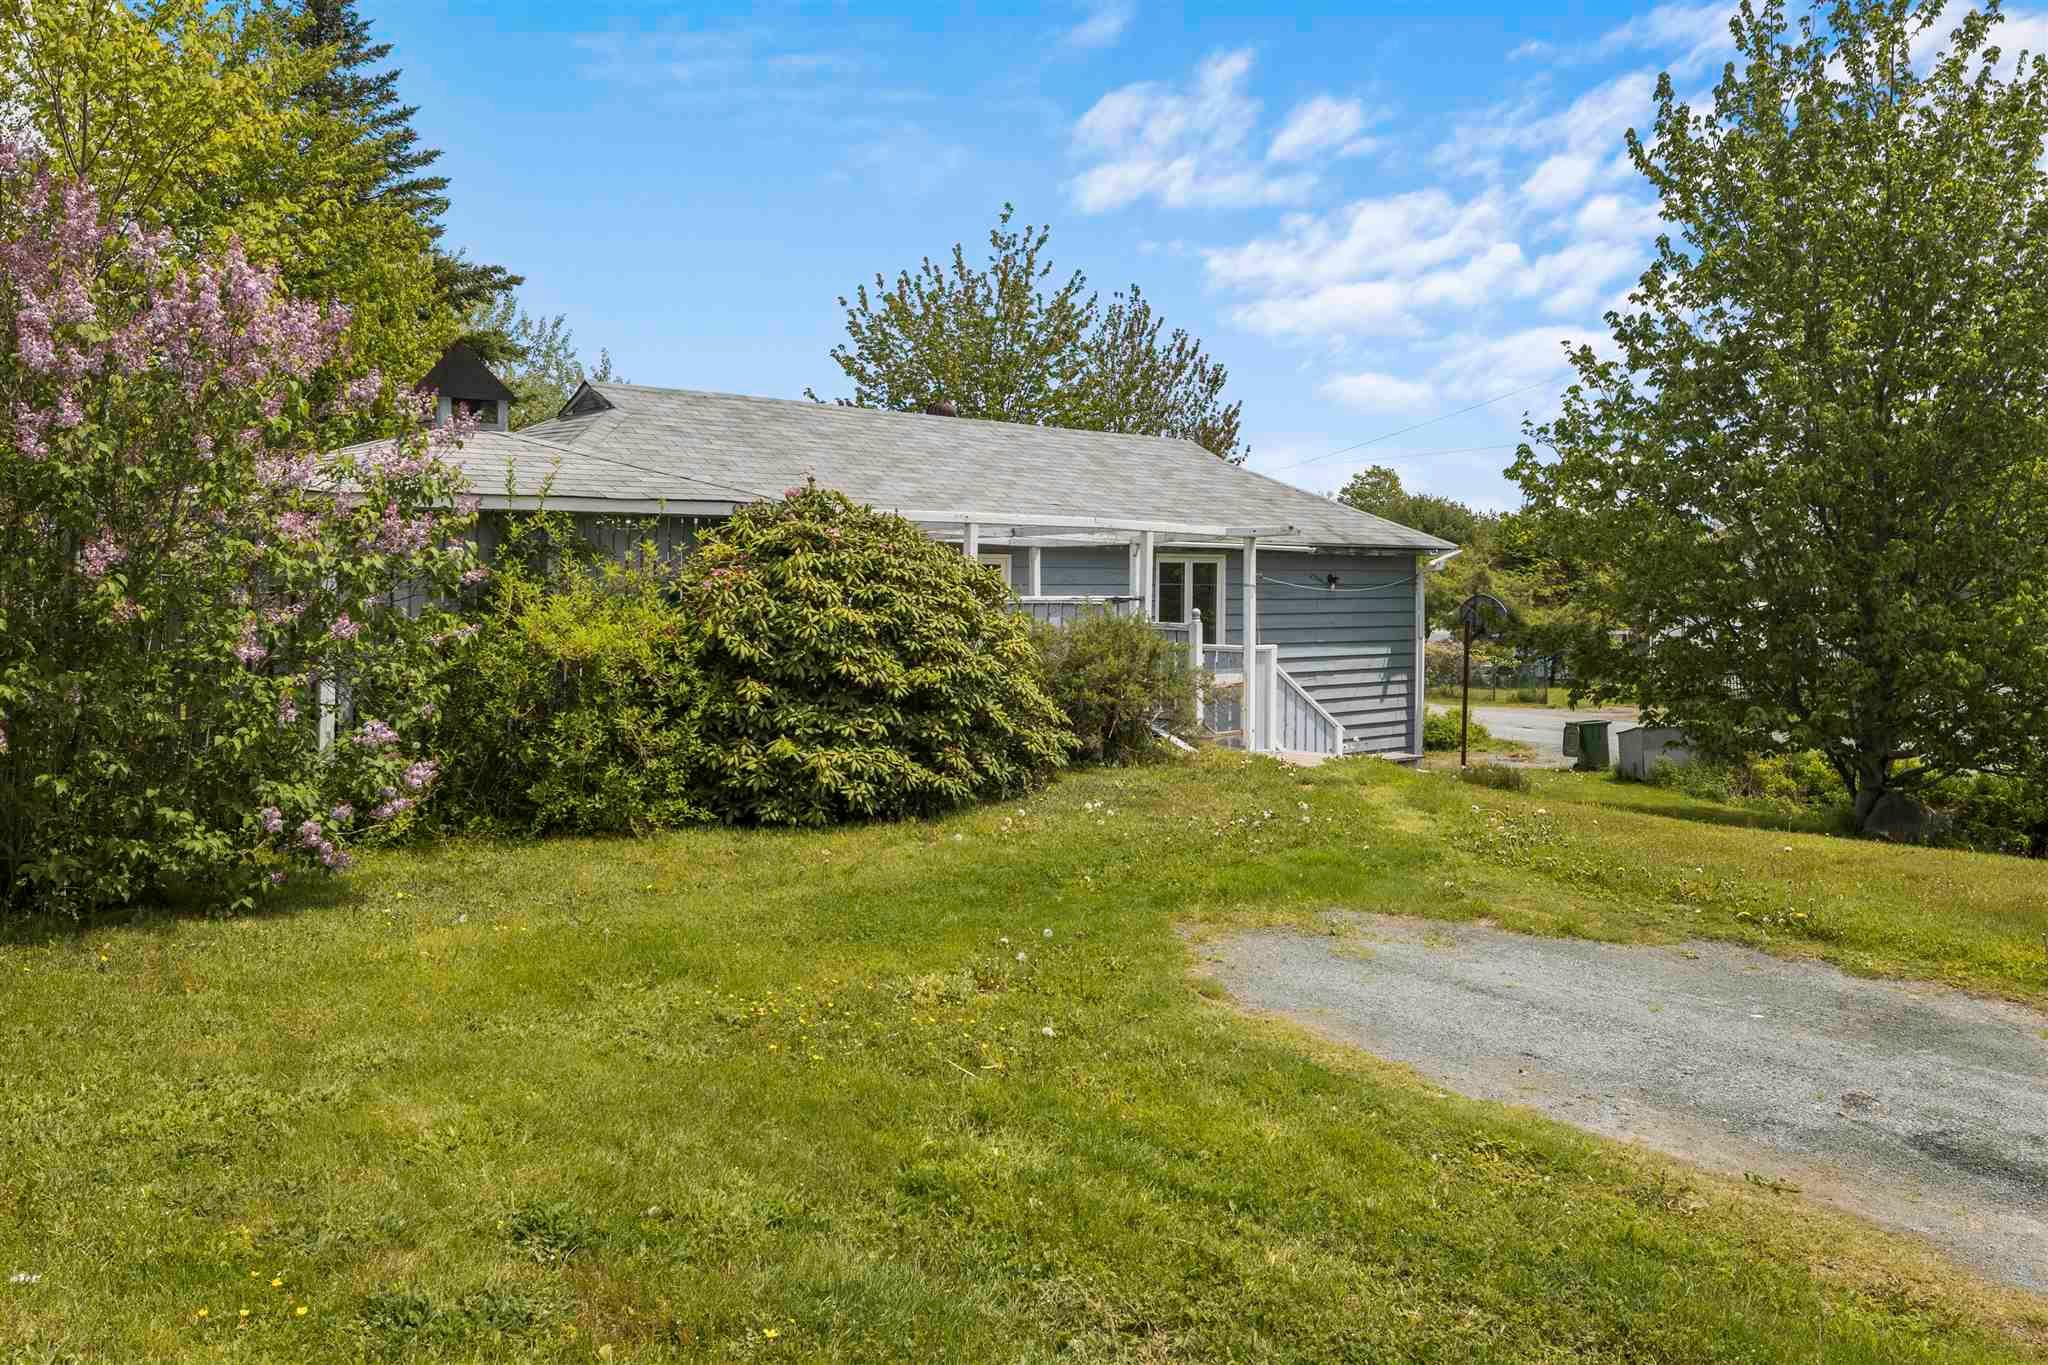 Main Photo: 4355 Highway 7 in Porters Lake: 31-Lawrencetown, Lake Echo, Porters Lake Residential for sale (Halifax-Dartmouth)  : MLS®# 202114332